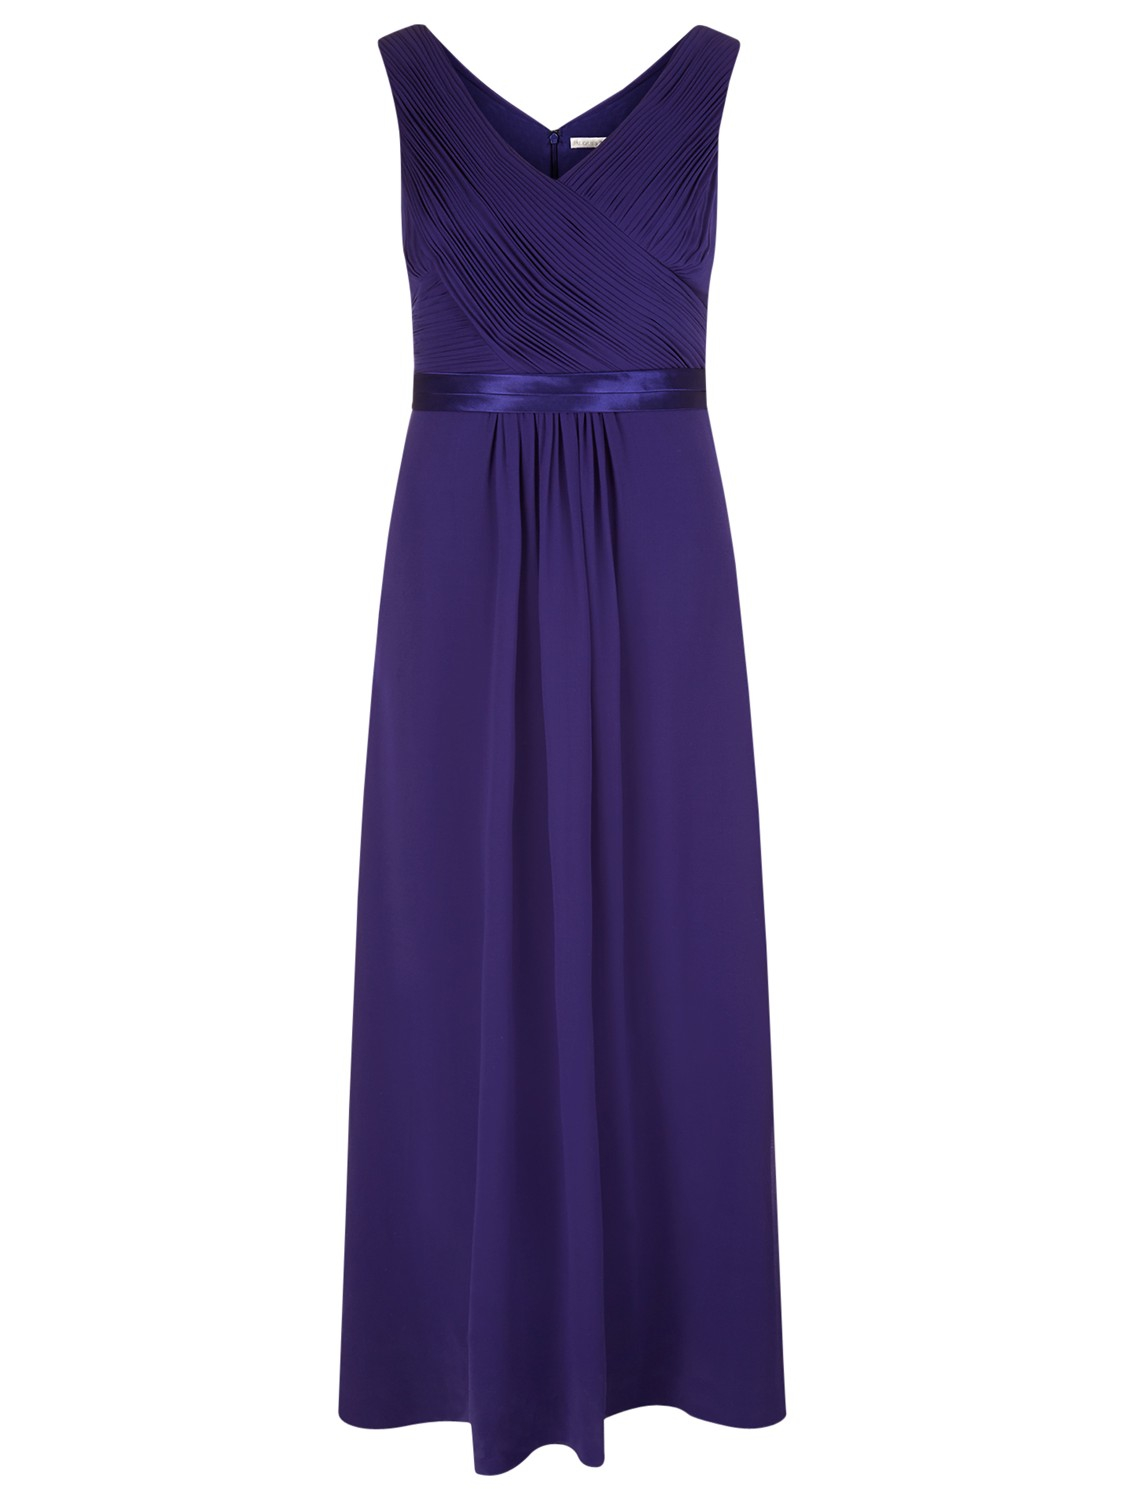 Jacques Vert Evening Dress With Shawl in Purple - Lyst